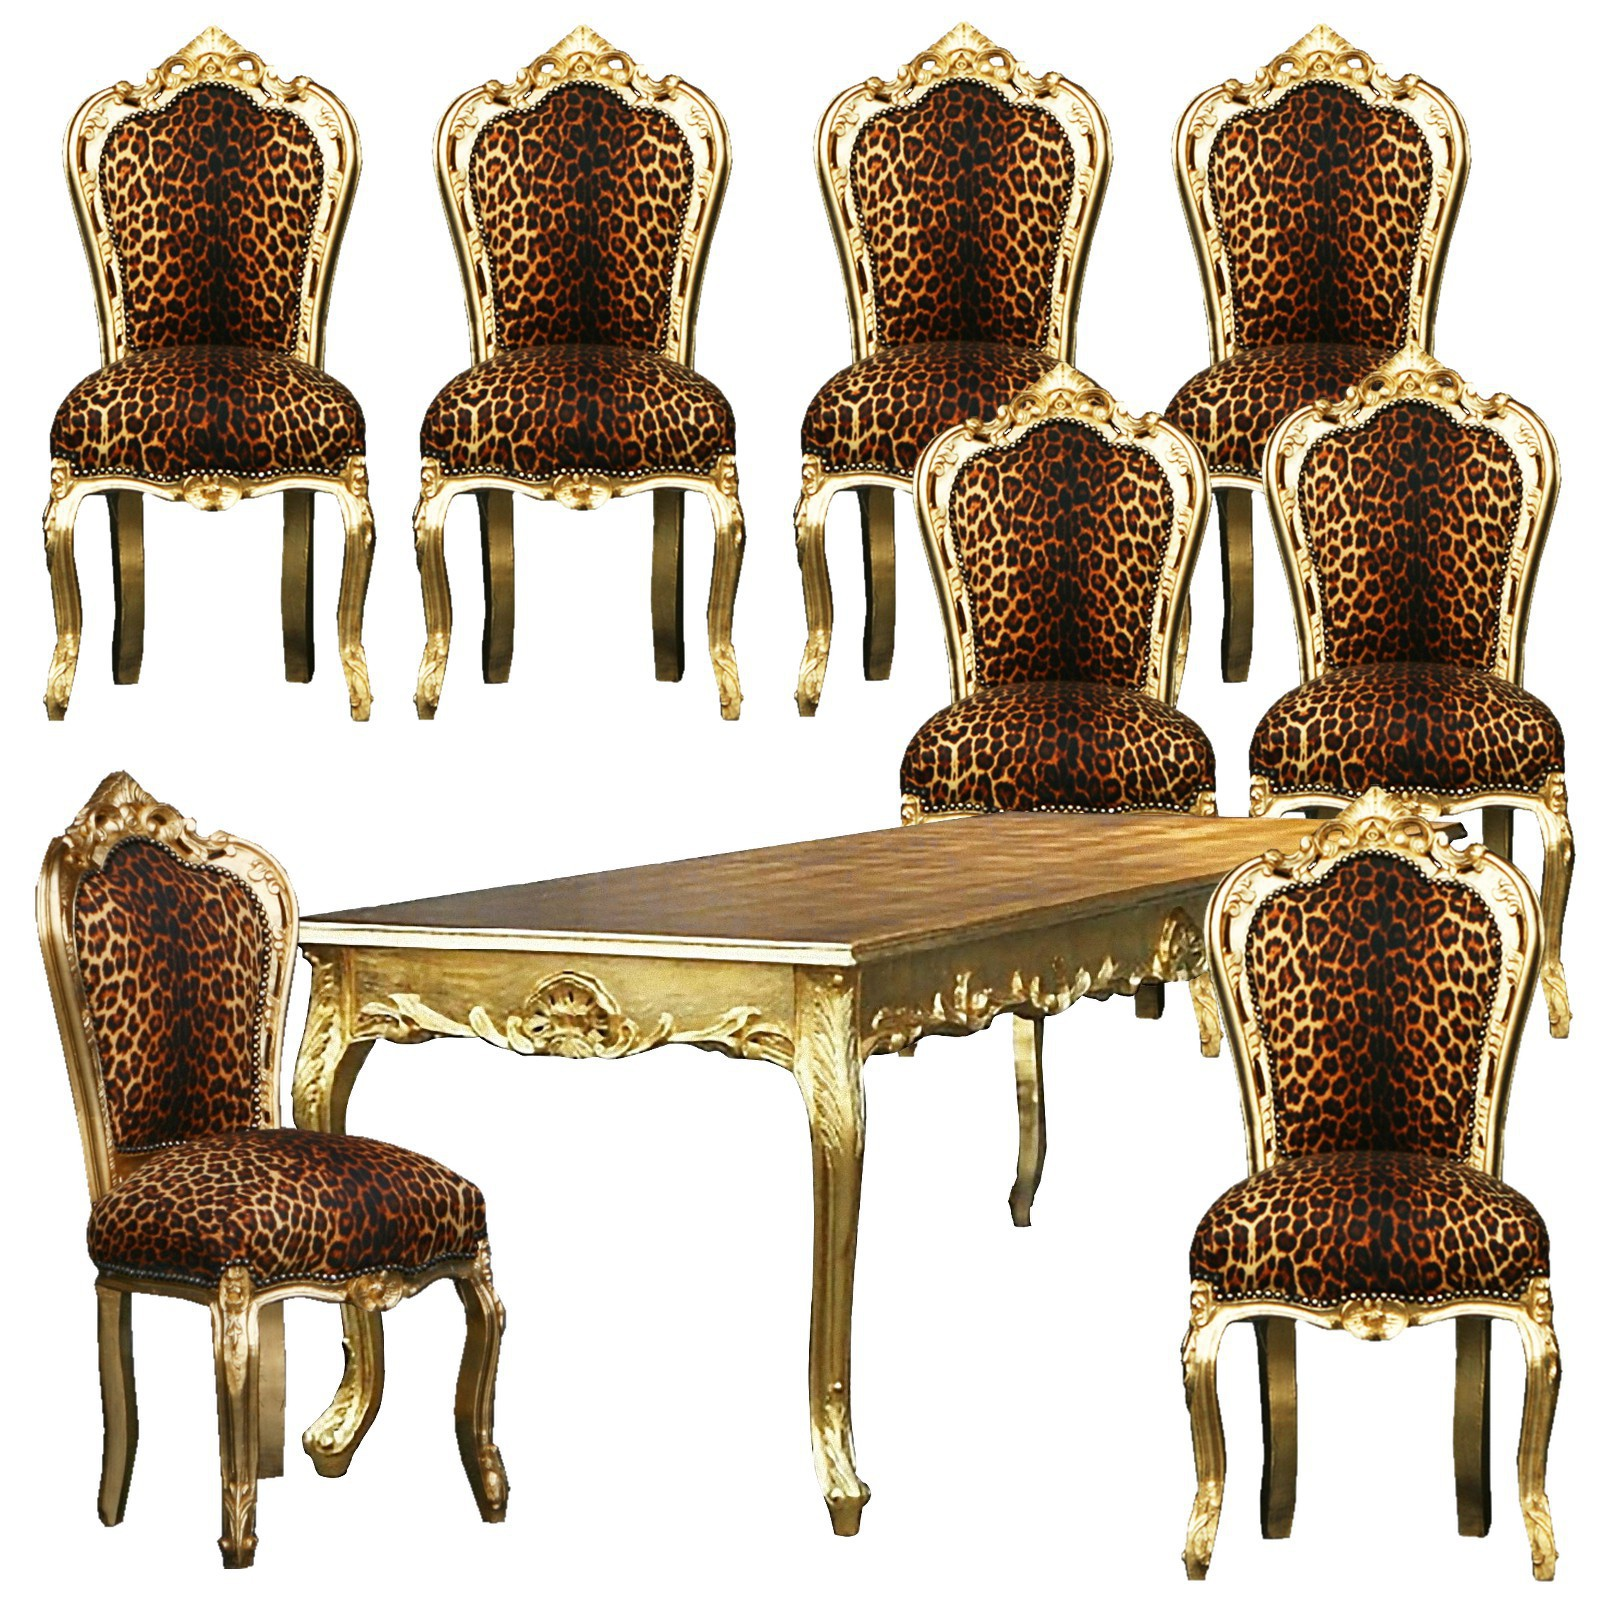 esszimmertisch und st hle leopard gold barock antik massivholz 8 polsterst hle. Black Bedroom Furniture Sets. Home Design Ideas